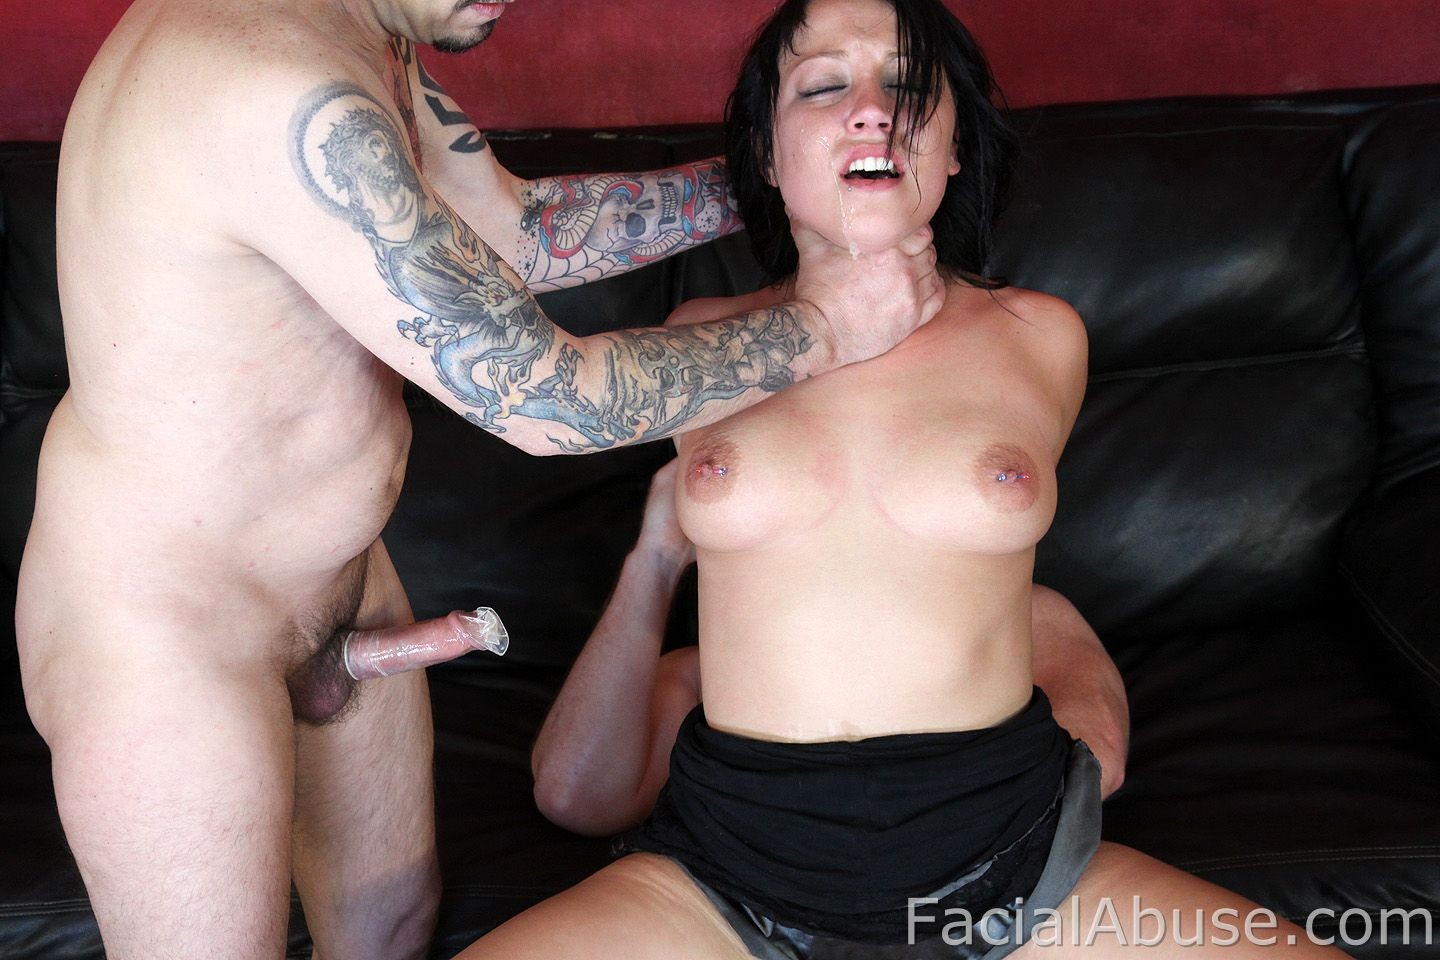 Redbone chick fucked on couch